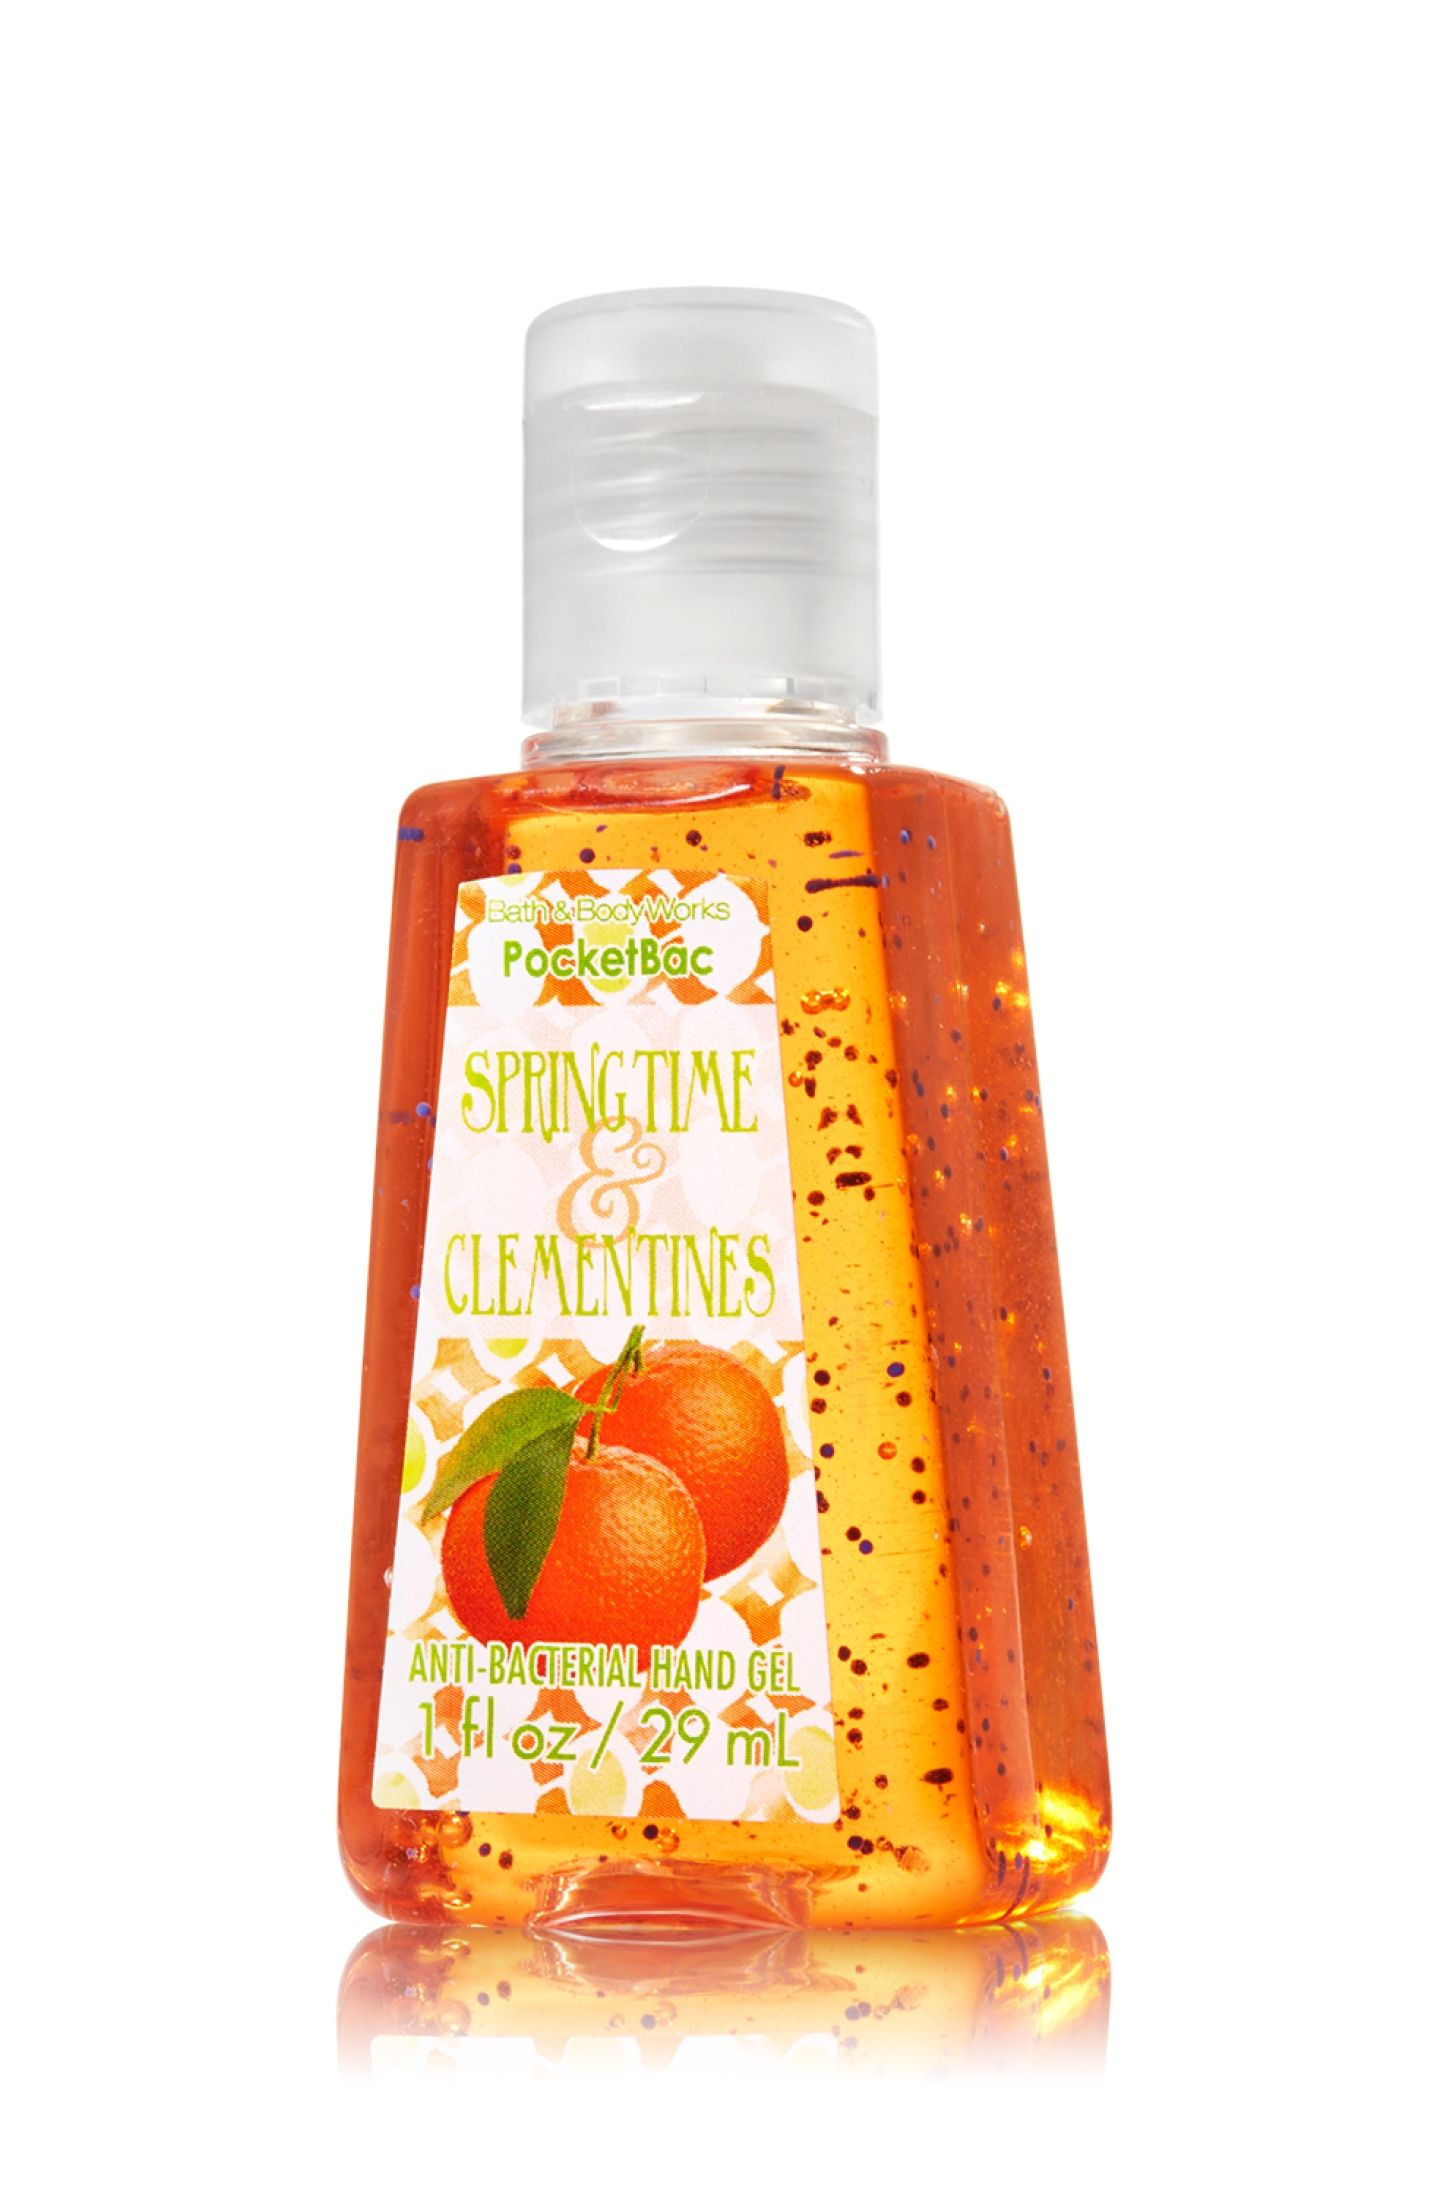 Springtime Clementines Bath Body Works Pocketbac Sanitizing